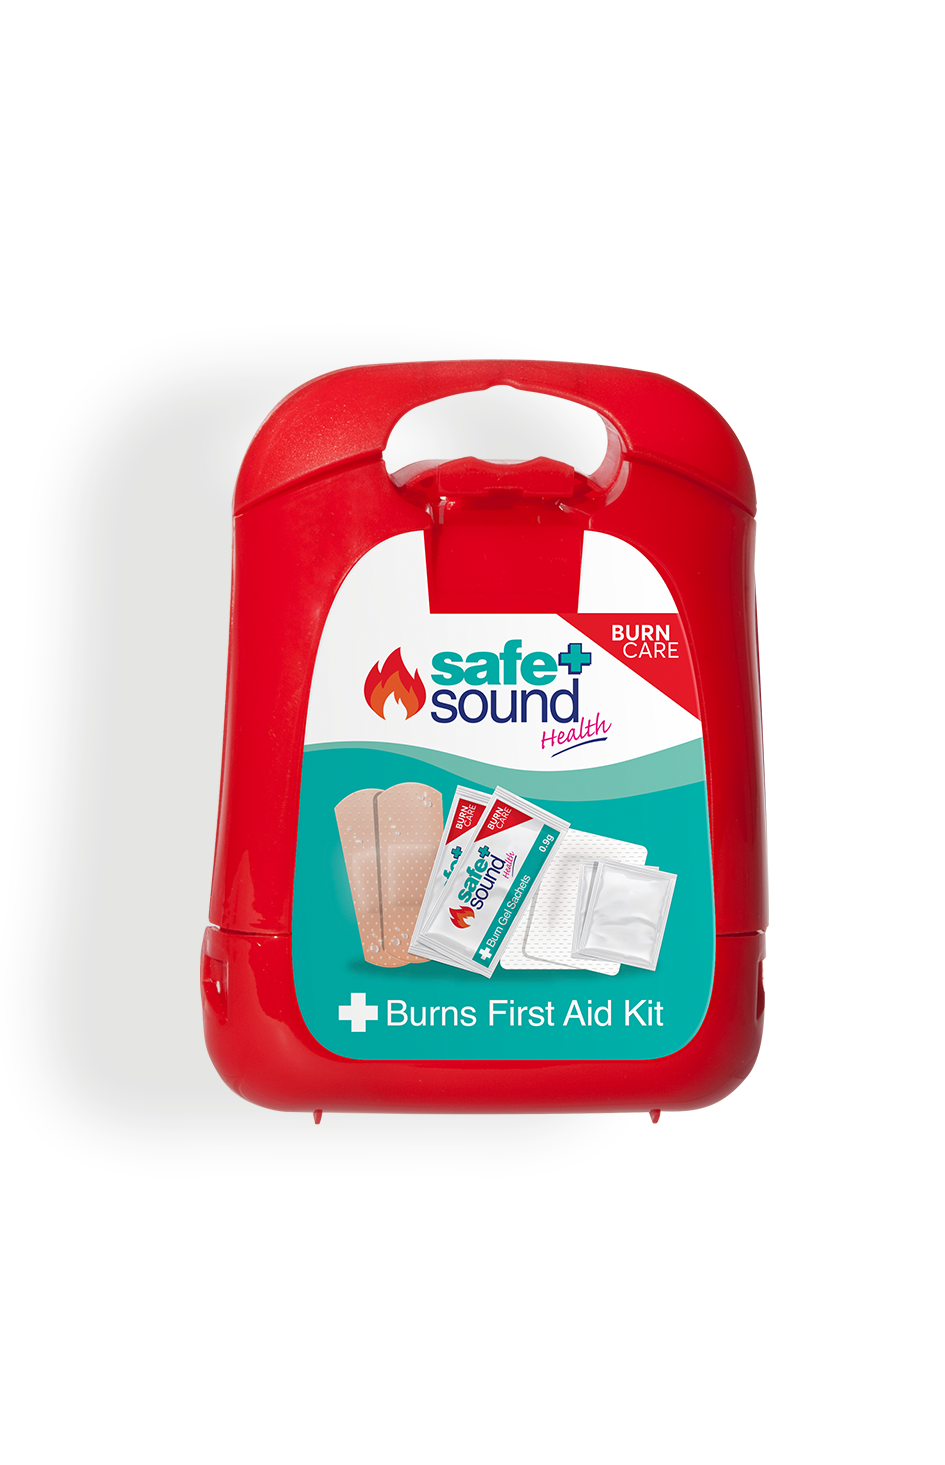 Safe and Sound Health's Burns First Aid Kit